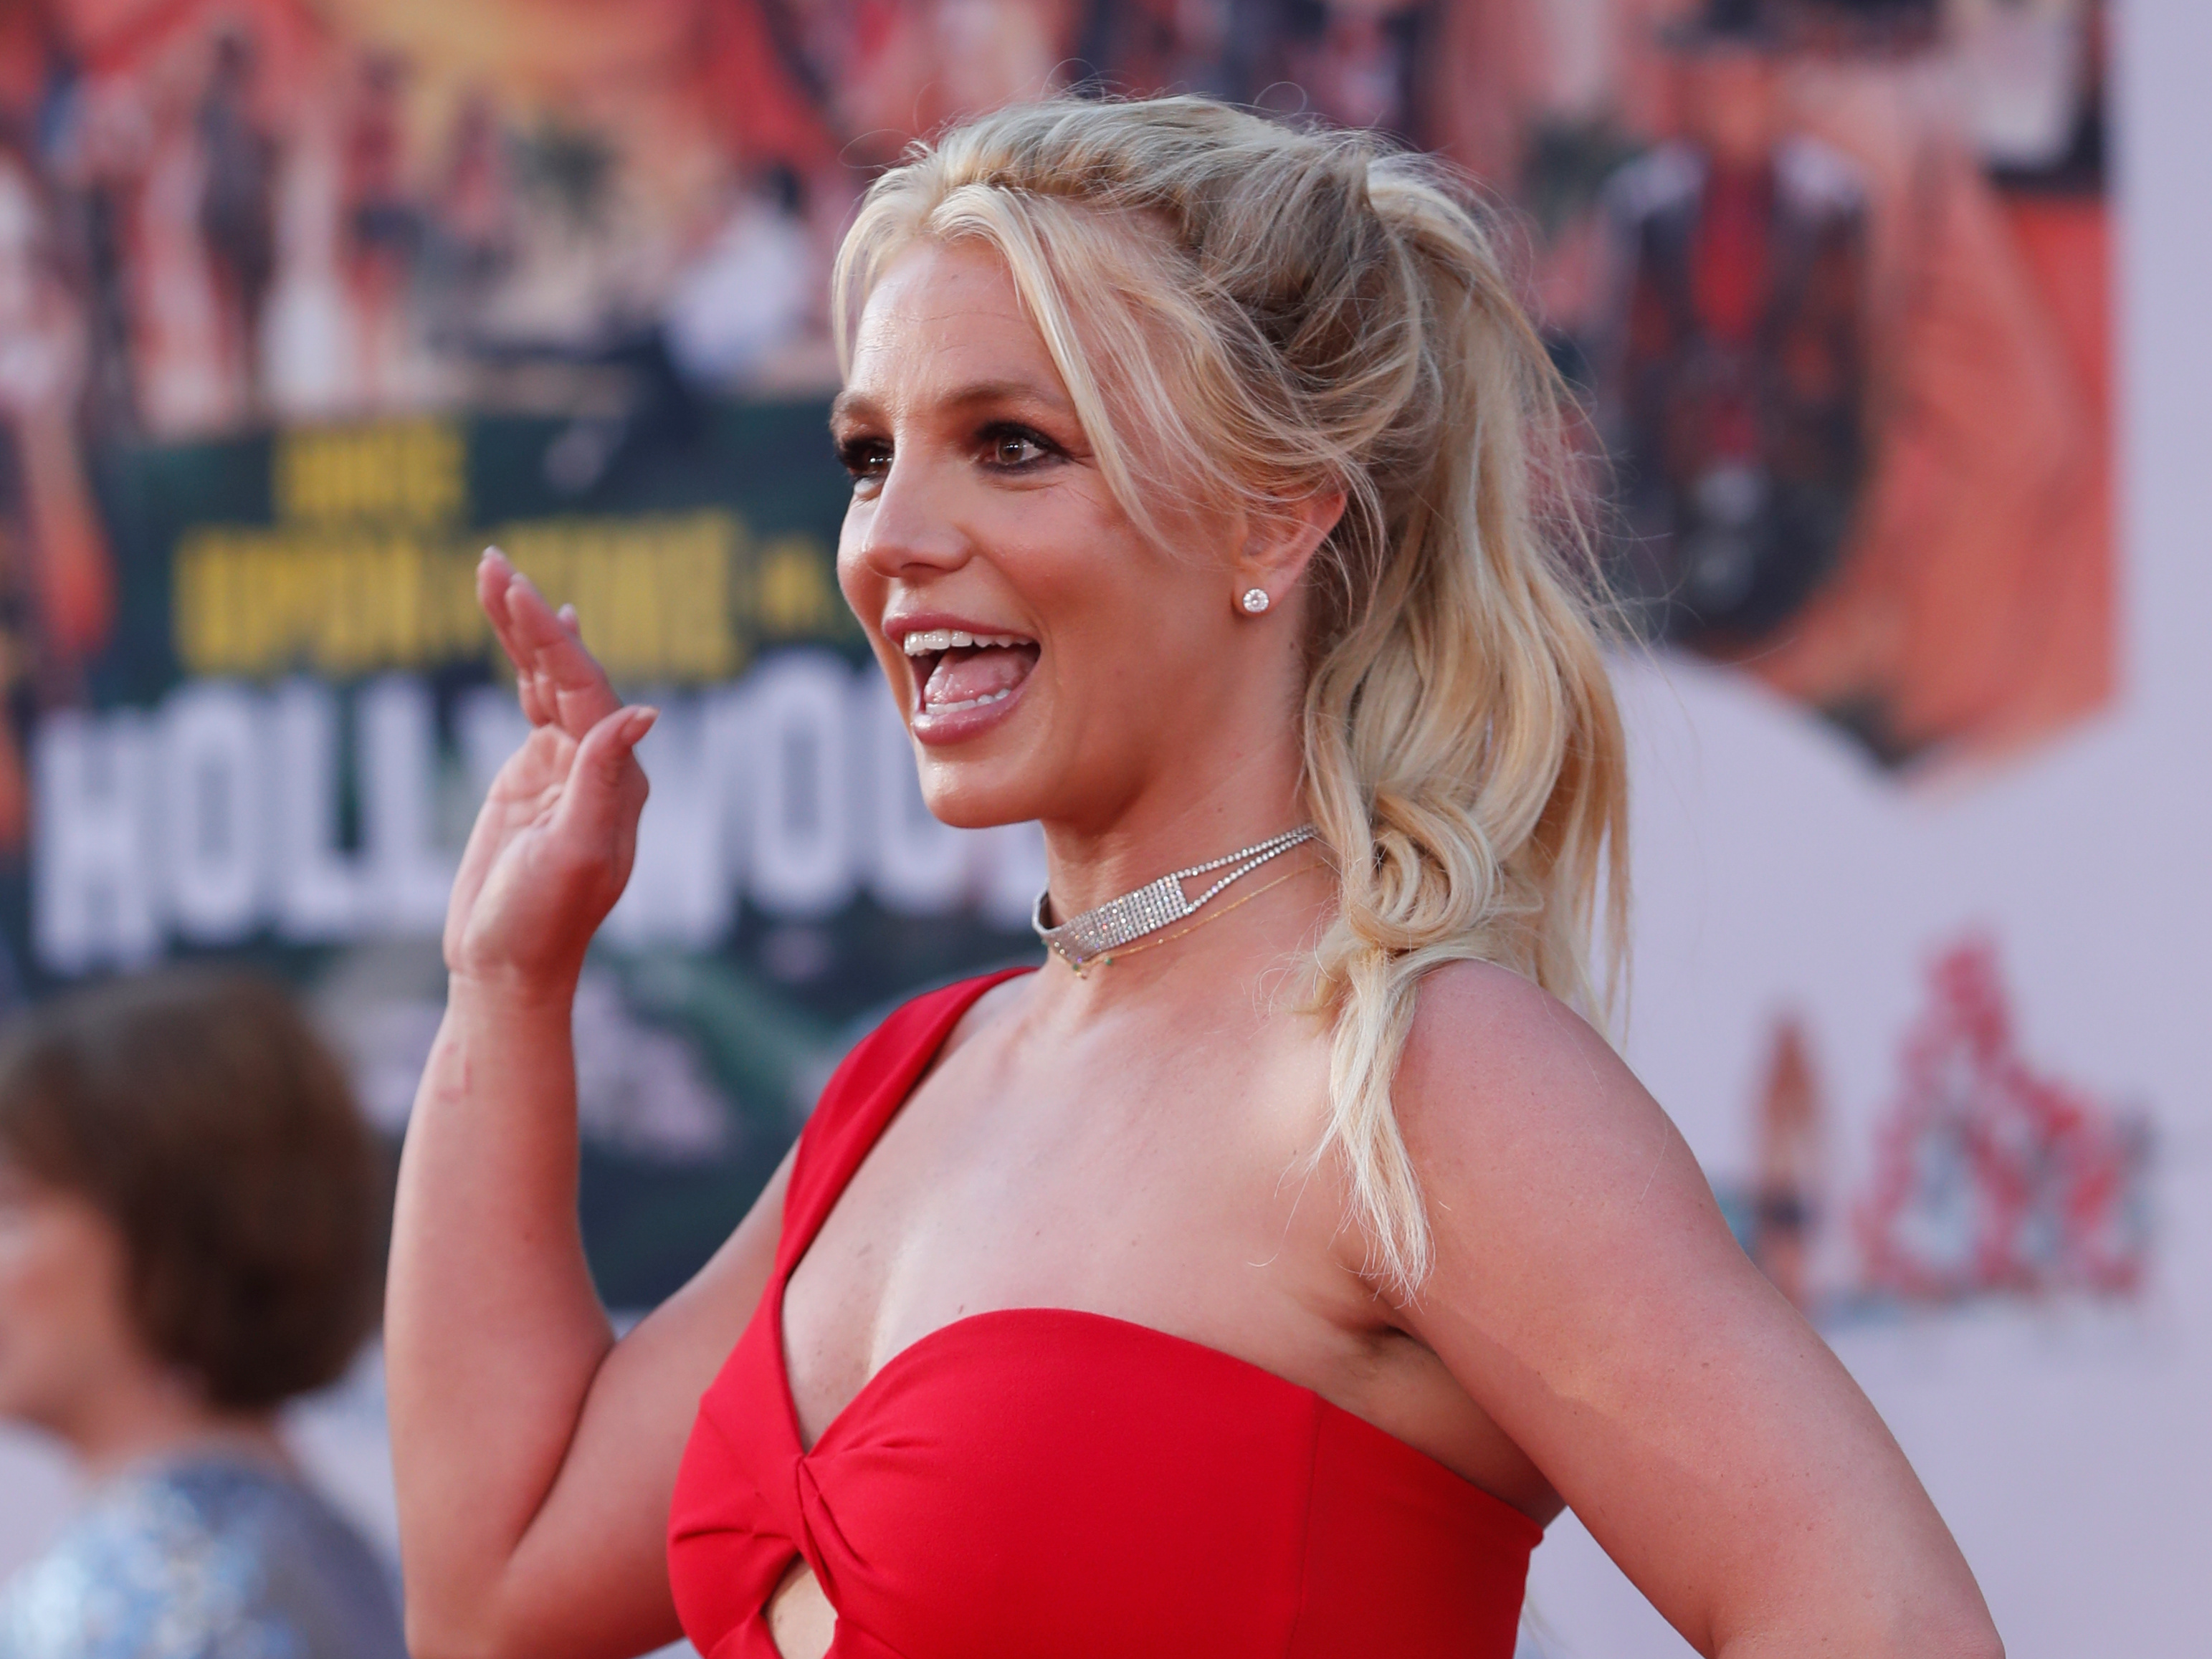 Britney Spears hasn't legally managed her $59 million fortune in 12 years. Here's how the pop icon makes and spends her cash, from Aim browsing trips to California mansions.